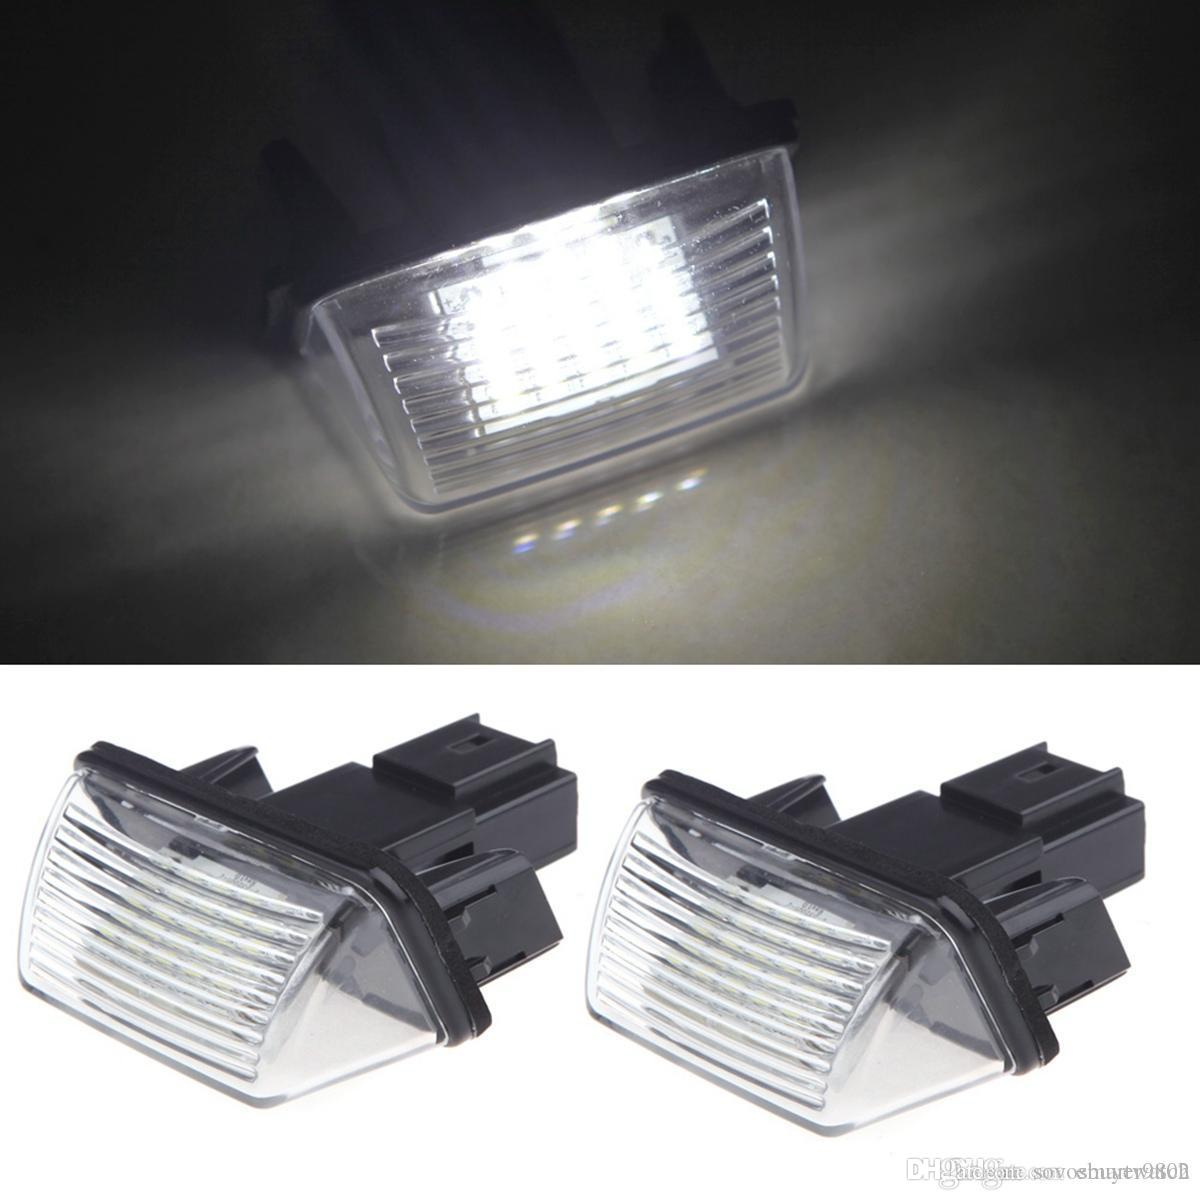 Bright Led License Number Plate Light For Peugeot 206 207 306 307 Wiring Numbers 406 407 Citroen C3 Ii White Lights Work Lamp From Sovosmartwatch